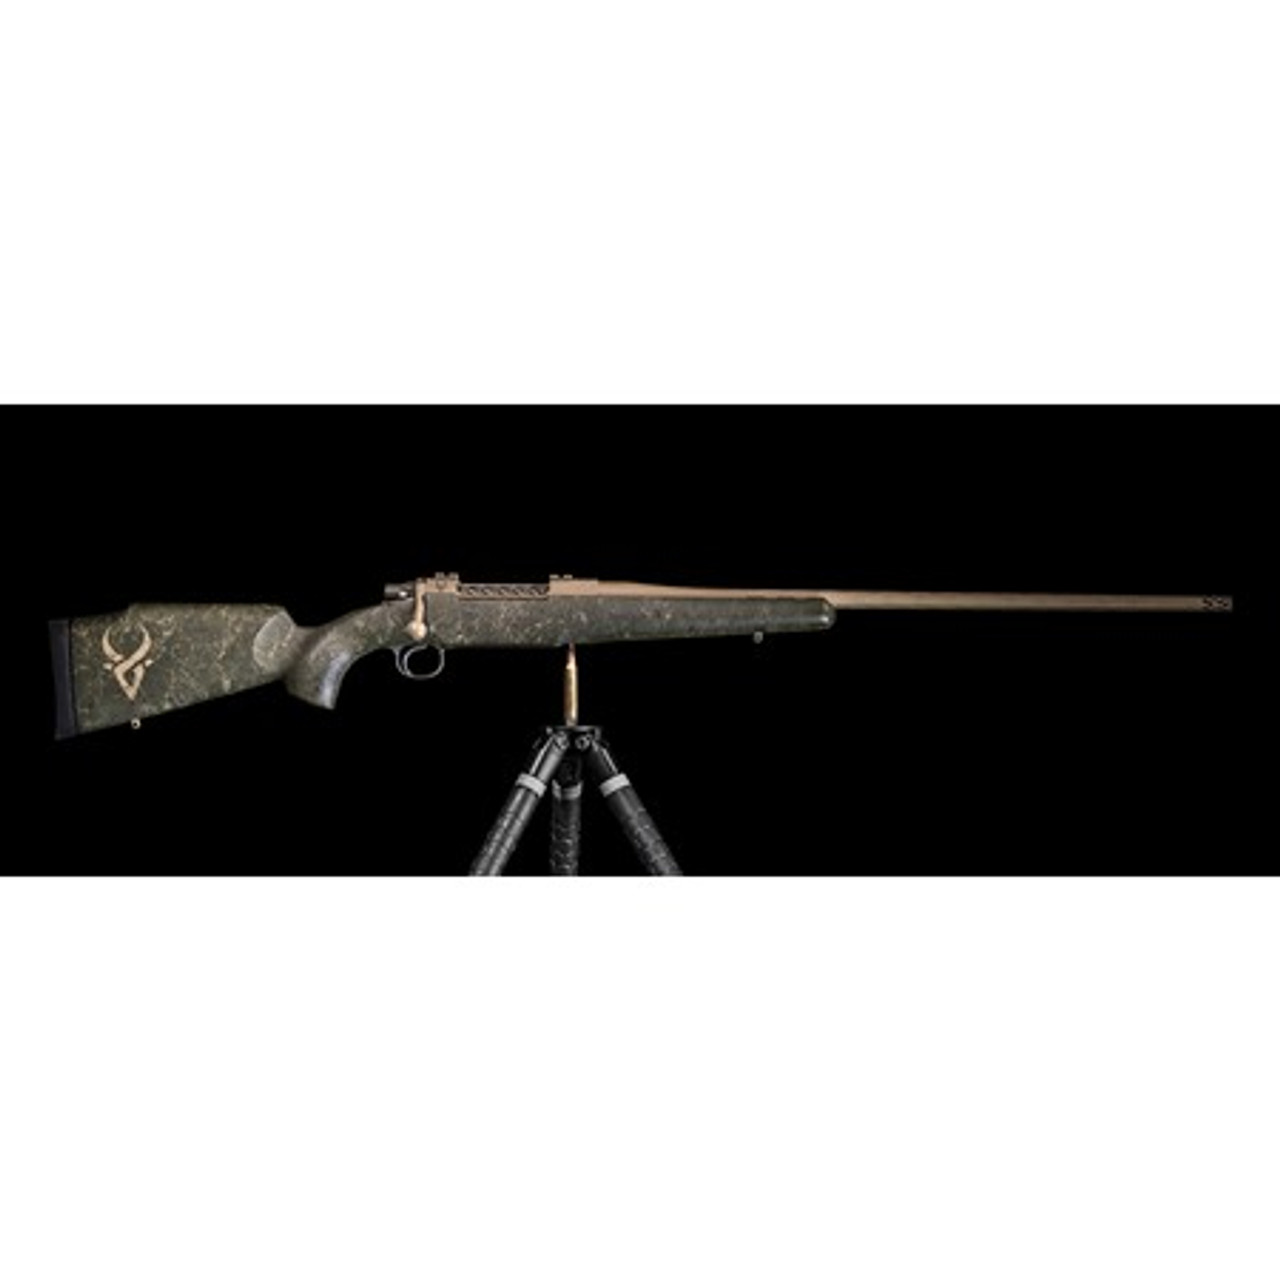 True Magnum's Adventure Rifle by Cooper Firearms